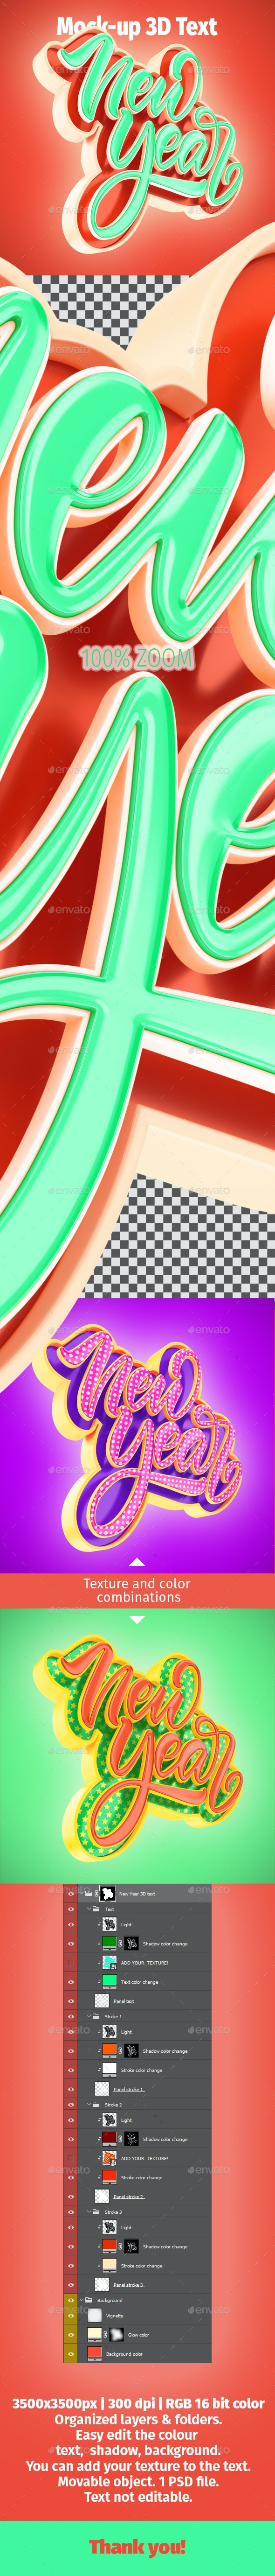 New Year 3D Text Mock-Up - Product Mock-Ups Graphics